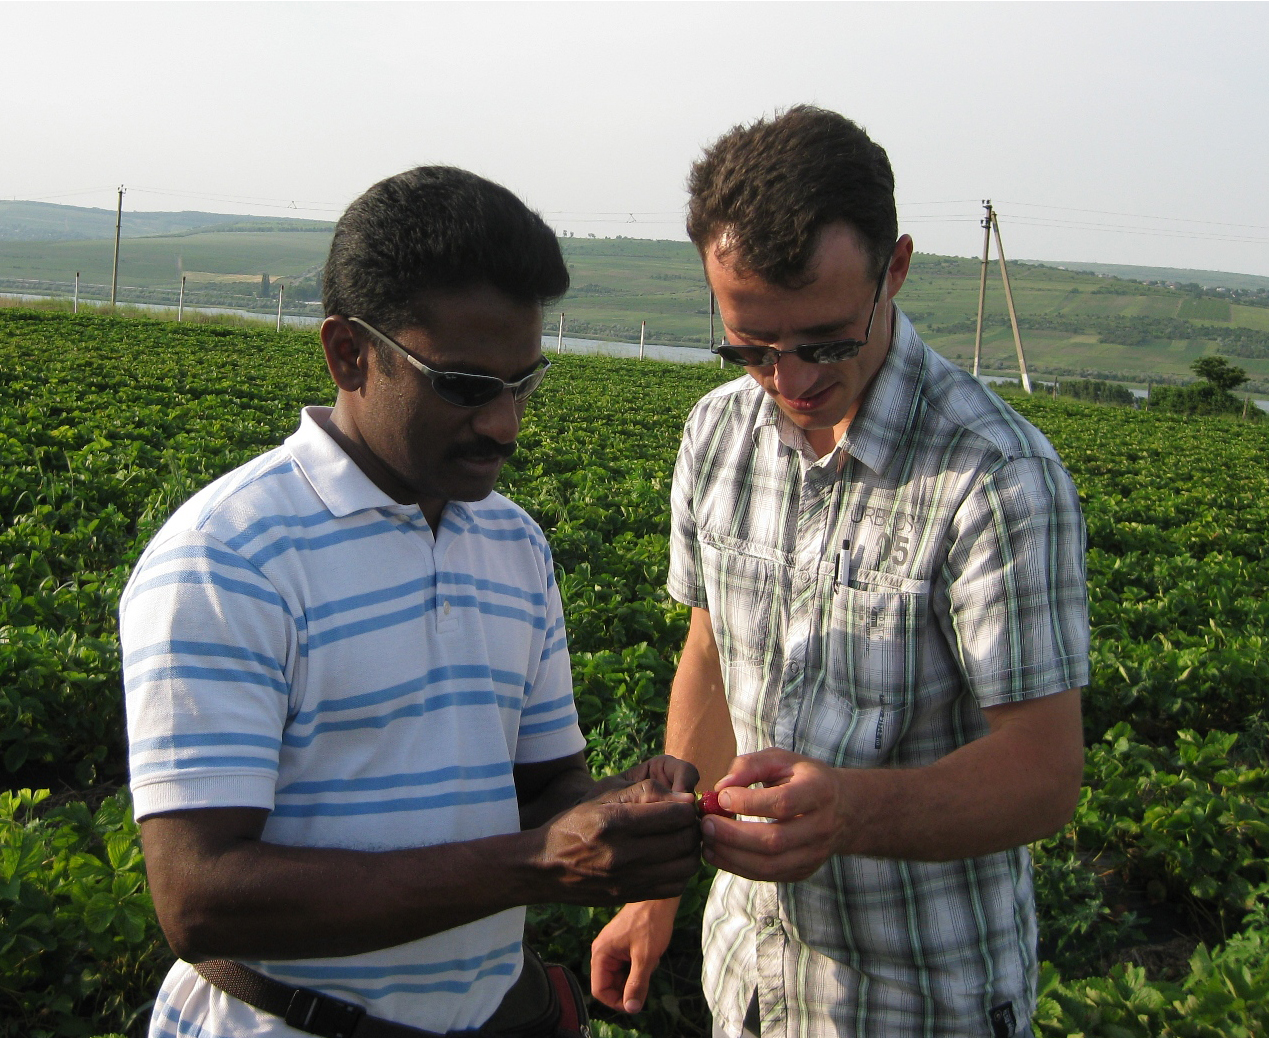 USAID Farmer-to-Farmer Volunteer Surendra Dara trains a member of farm and input supply company Agrodor Succes's management.